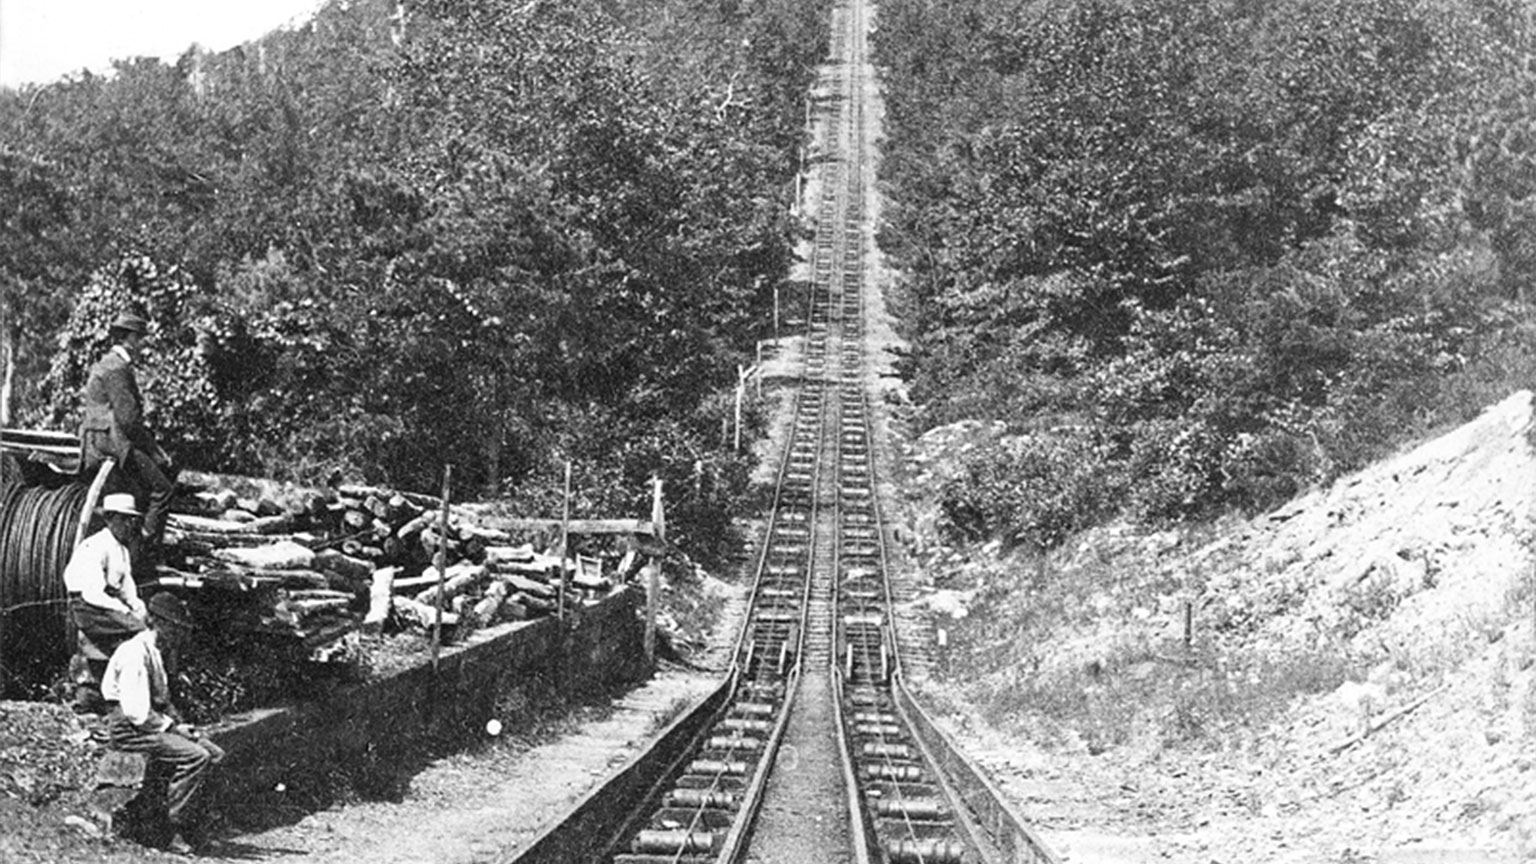 This is a great picture to see the steep climb the railroad cars had to make.